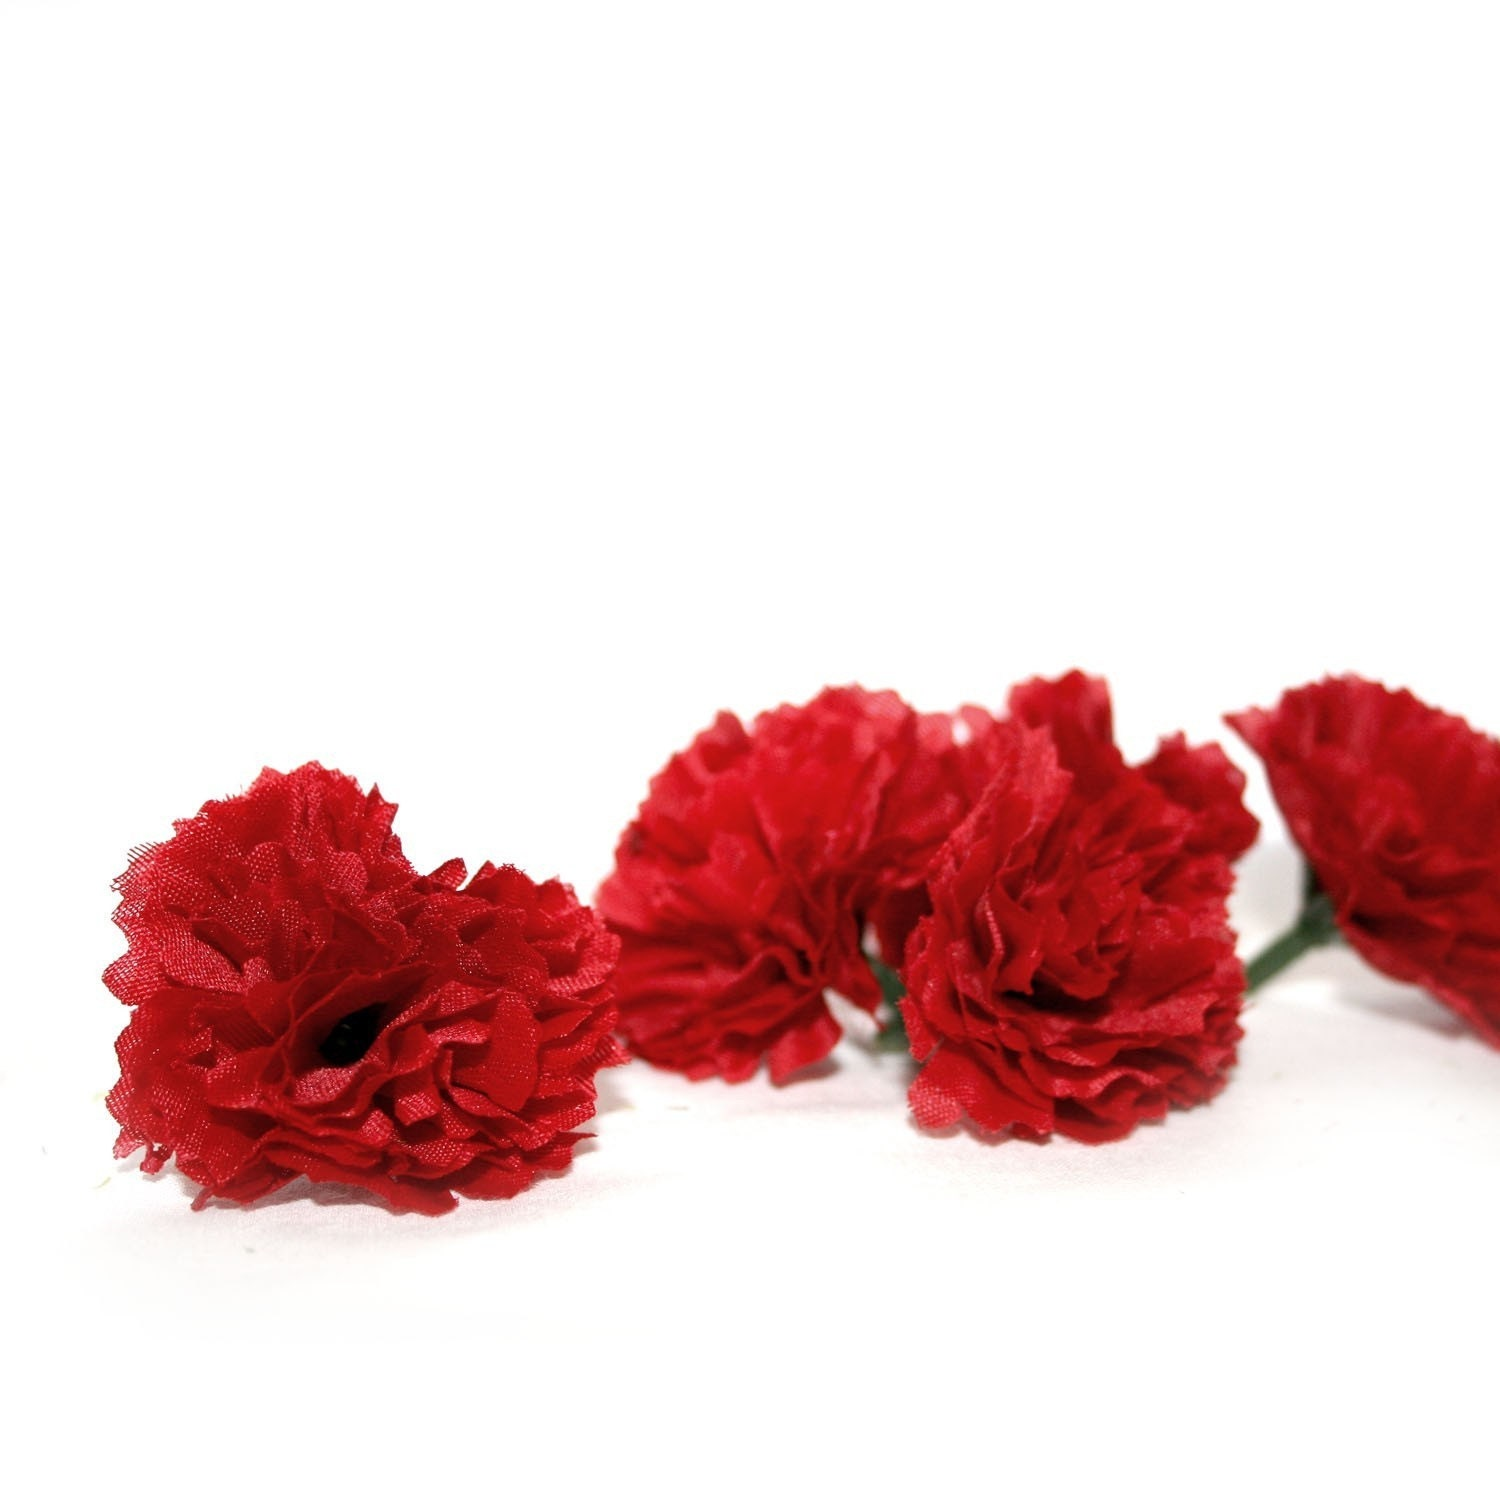 10 Valentine Red Baby Carnations Artificial Flowers